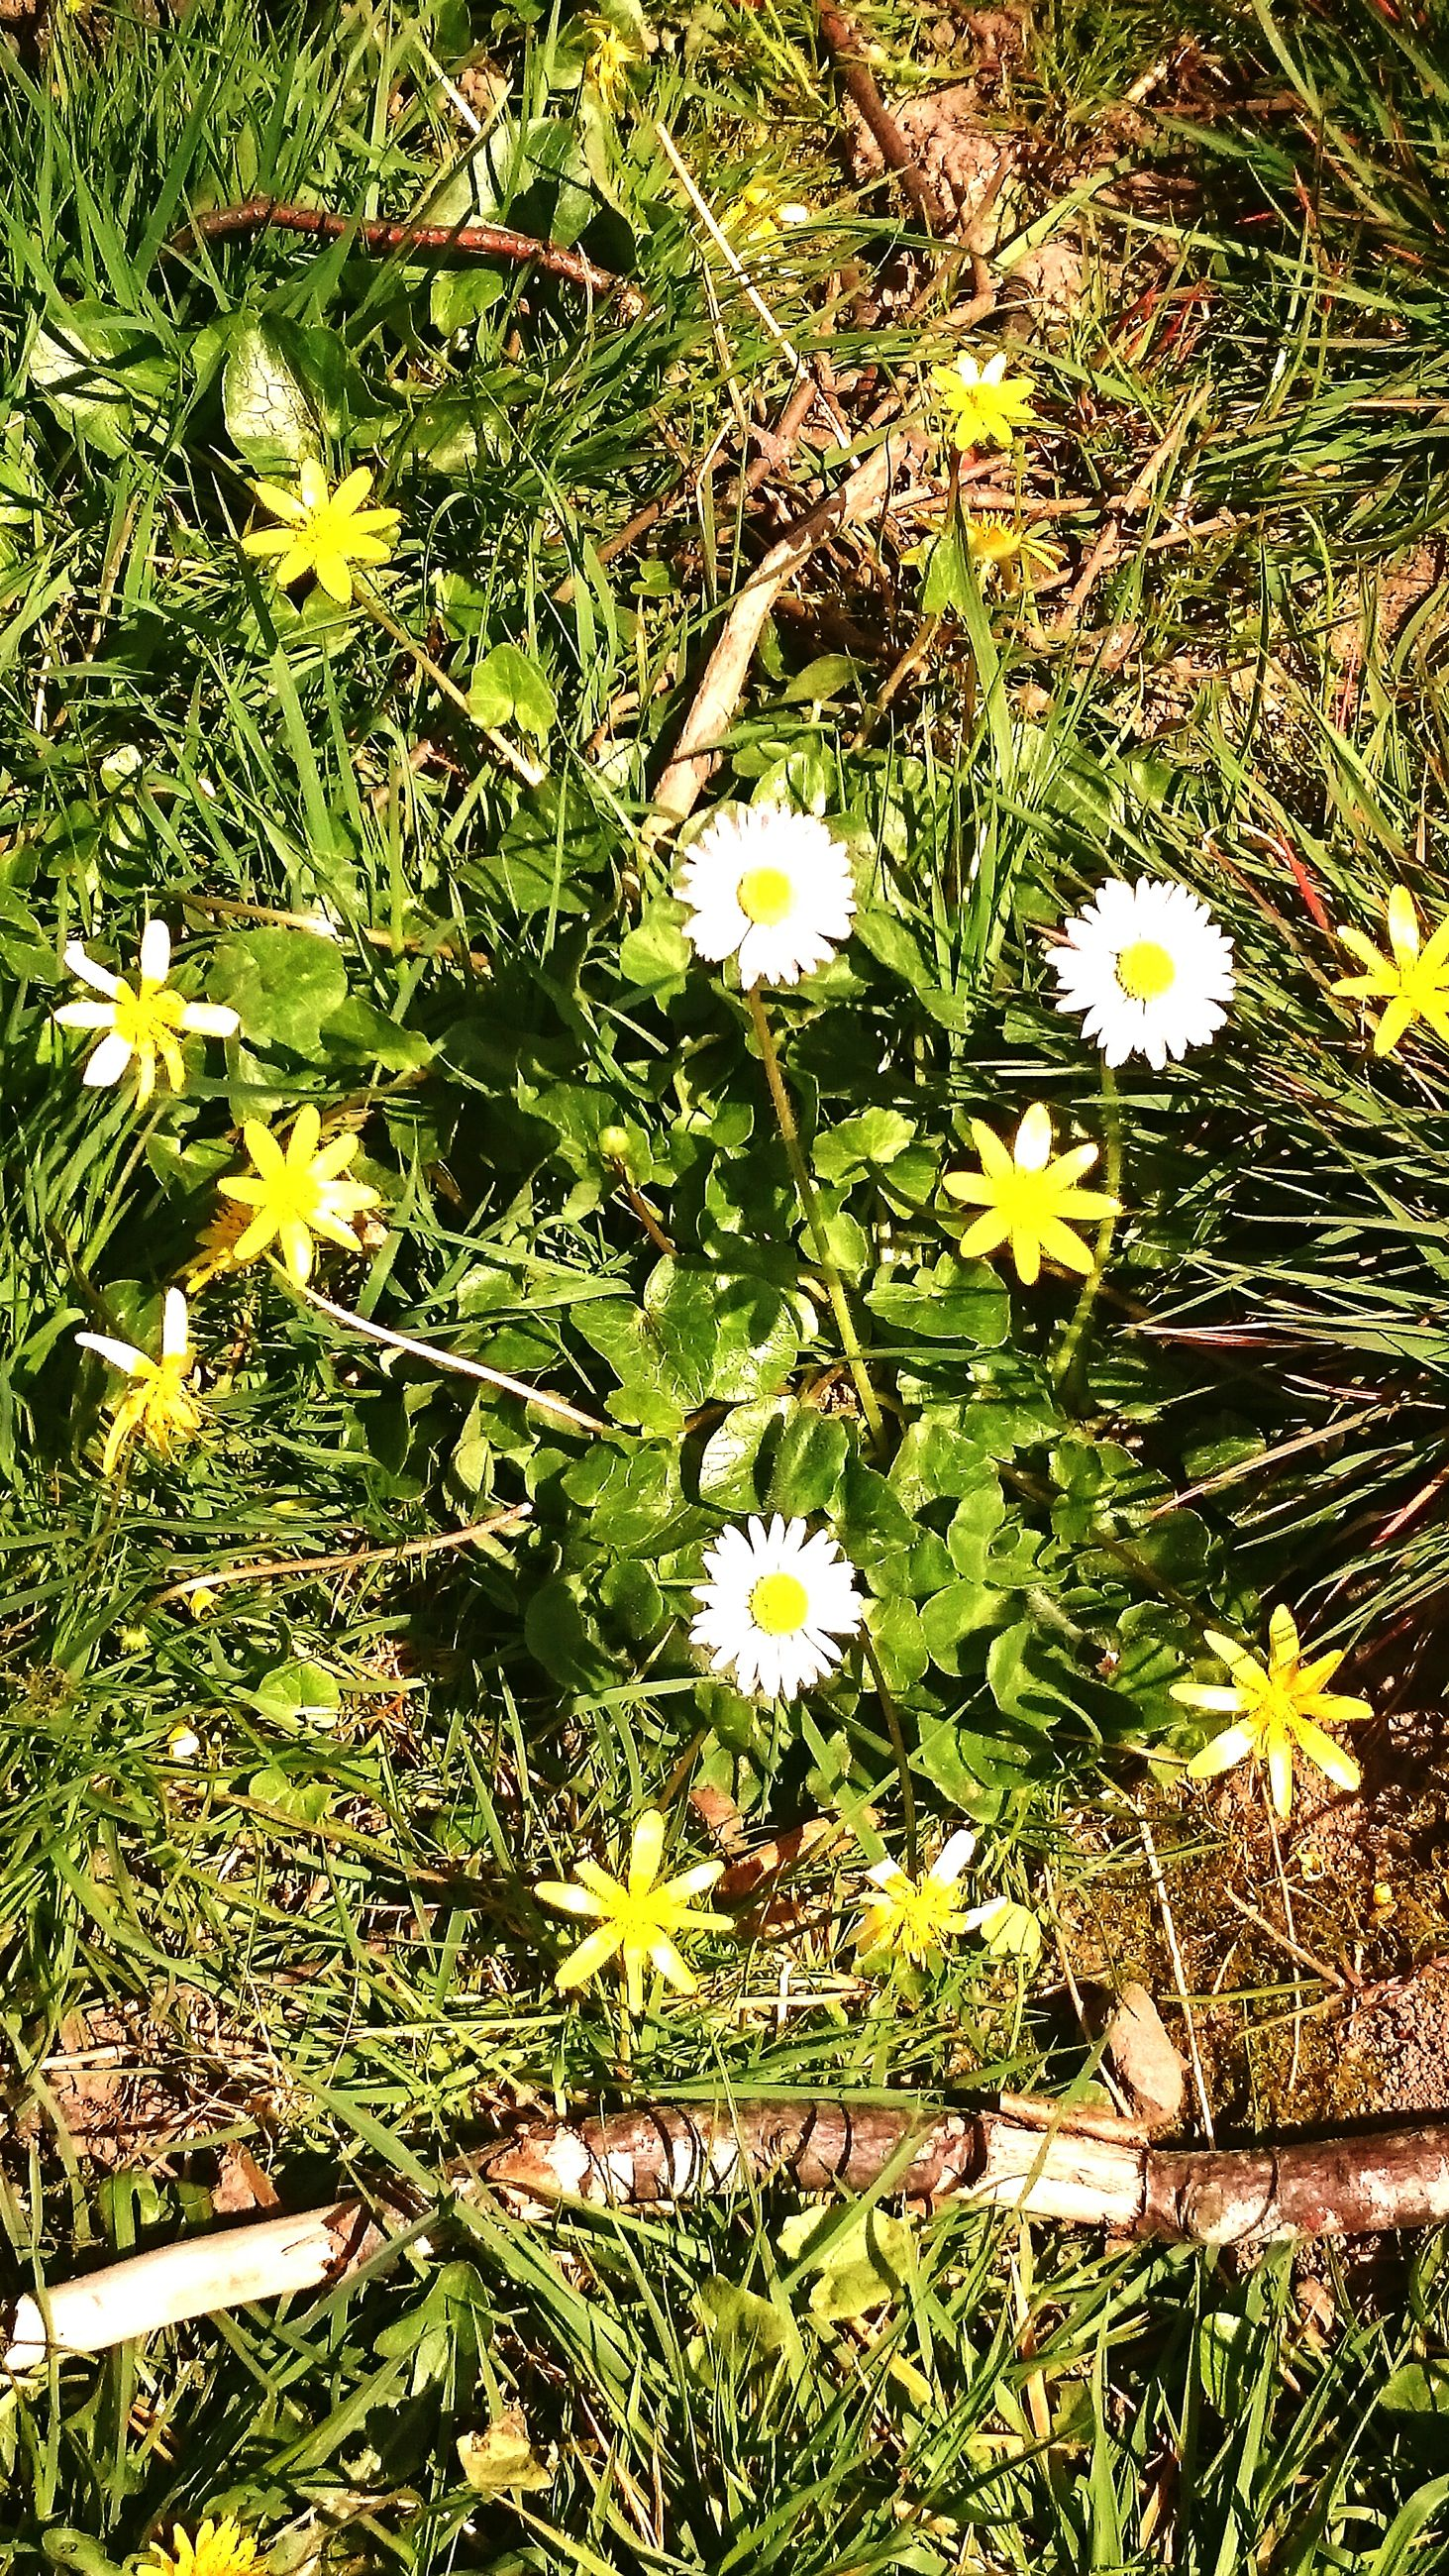 flower, growth, freshness, fragility, white color, plant, beauty in nature, high angle view, petal, nature, field, blooming, grass, flower head, daisy, in bloom, wildflower, dandelion, green color, stem